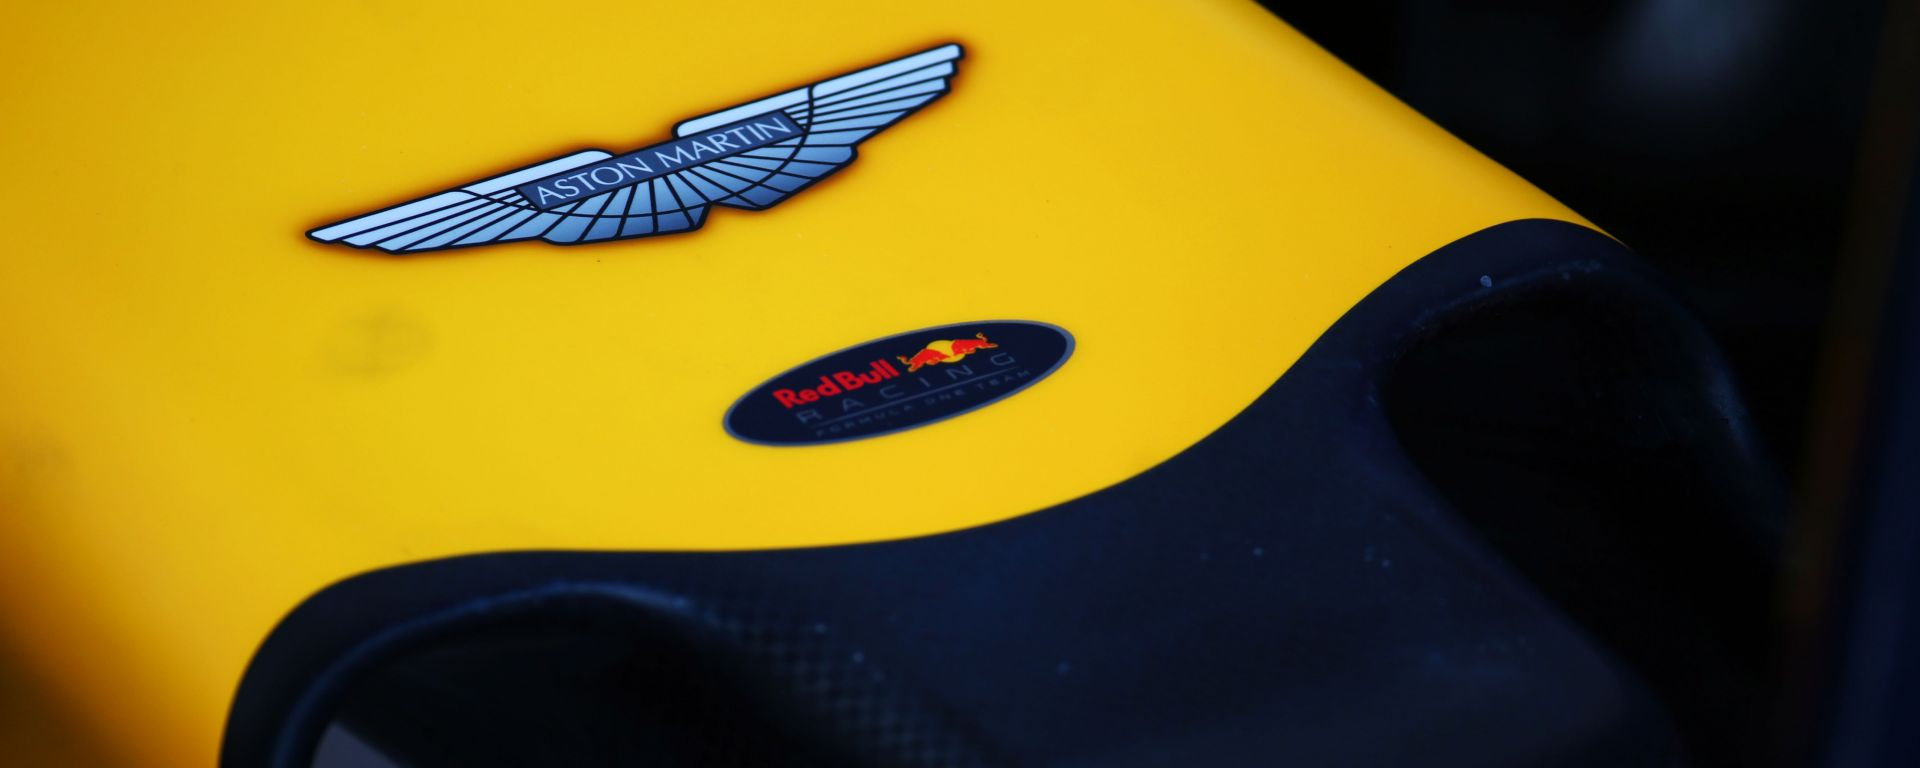 Il musetto di una Red Bull Racing con logo Aston Martin